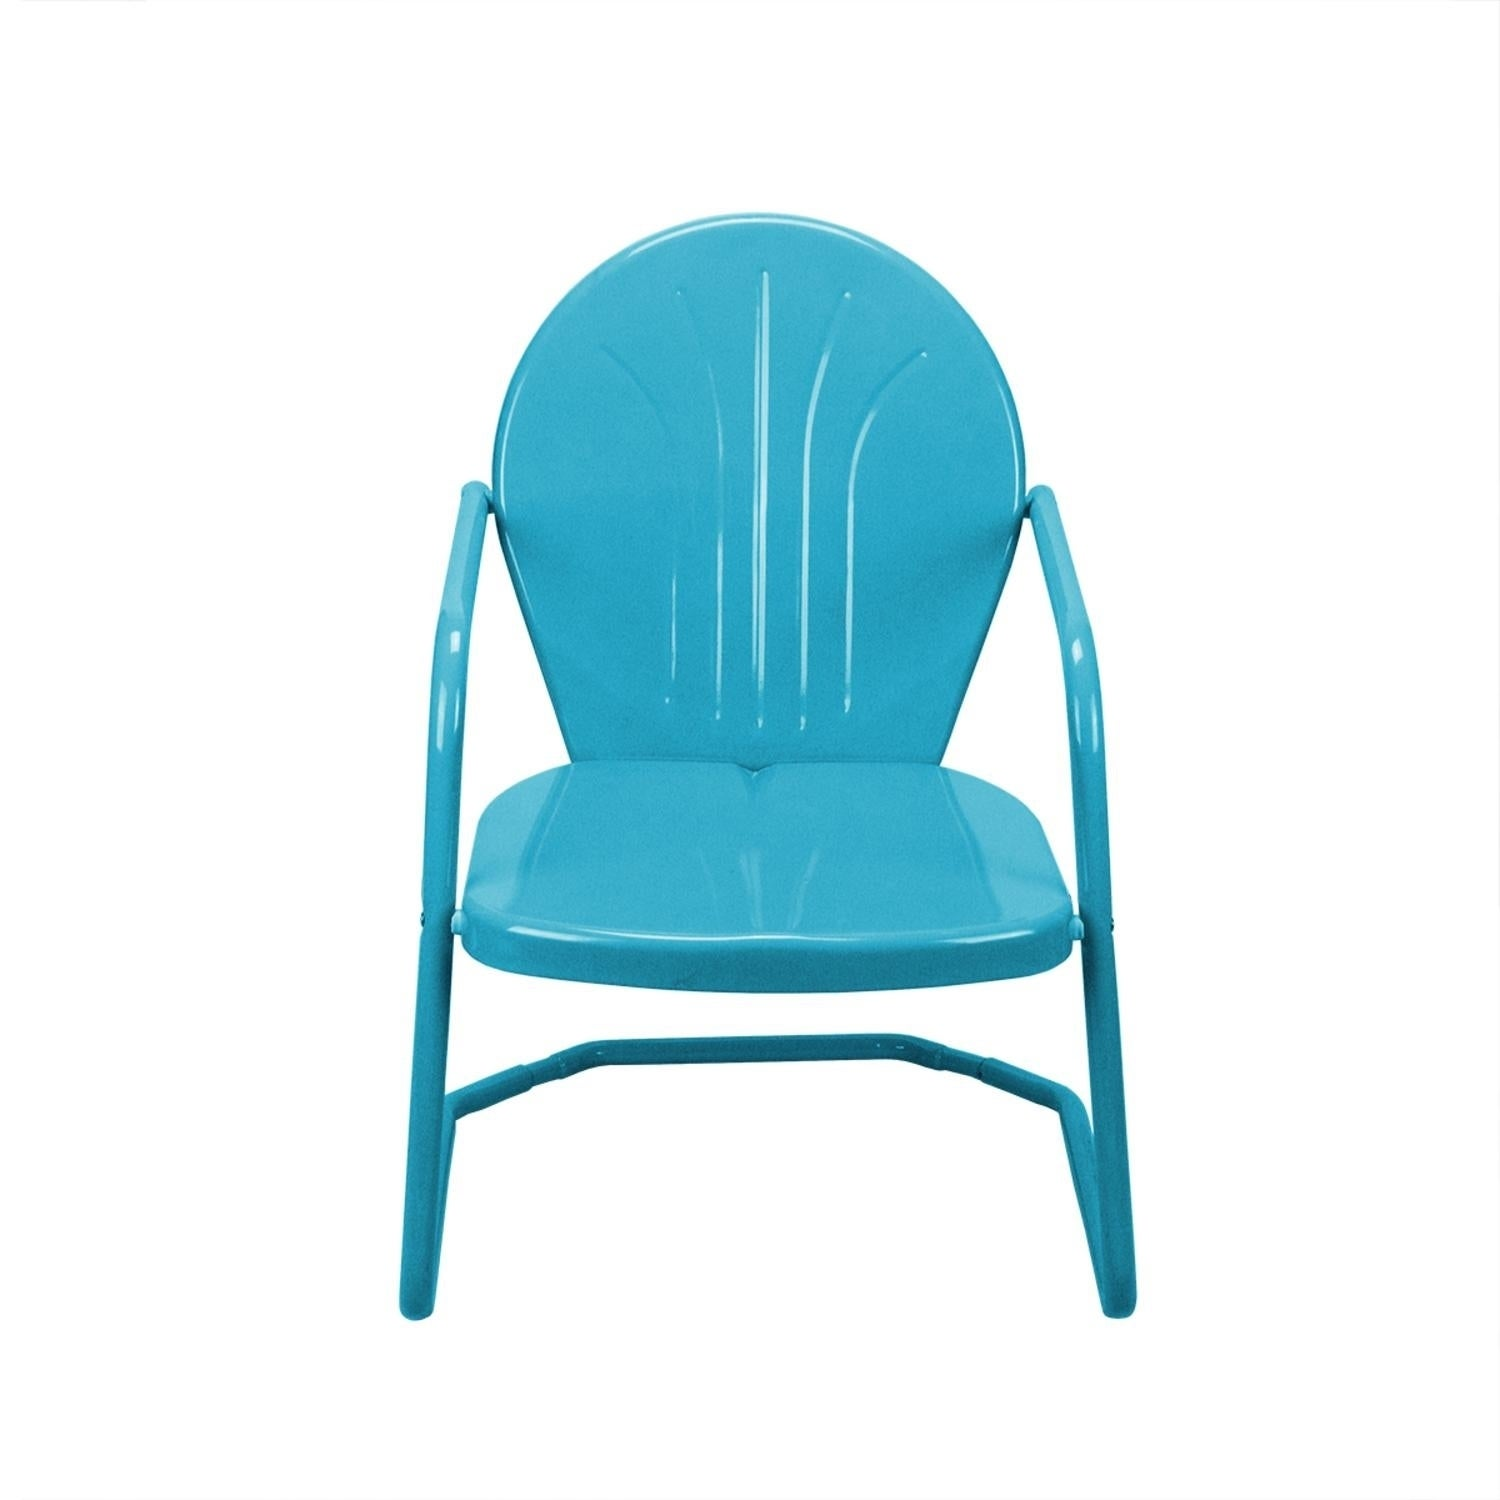 Shop Retro Style 34 Inch Outdoor Metal Tulip Chair Turquoise Blue   Free  Shipping Today   Overstock   23004515